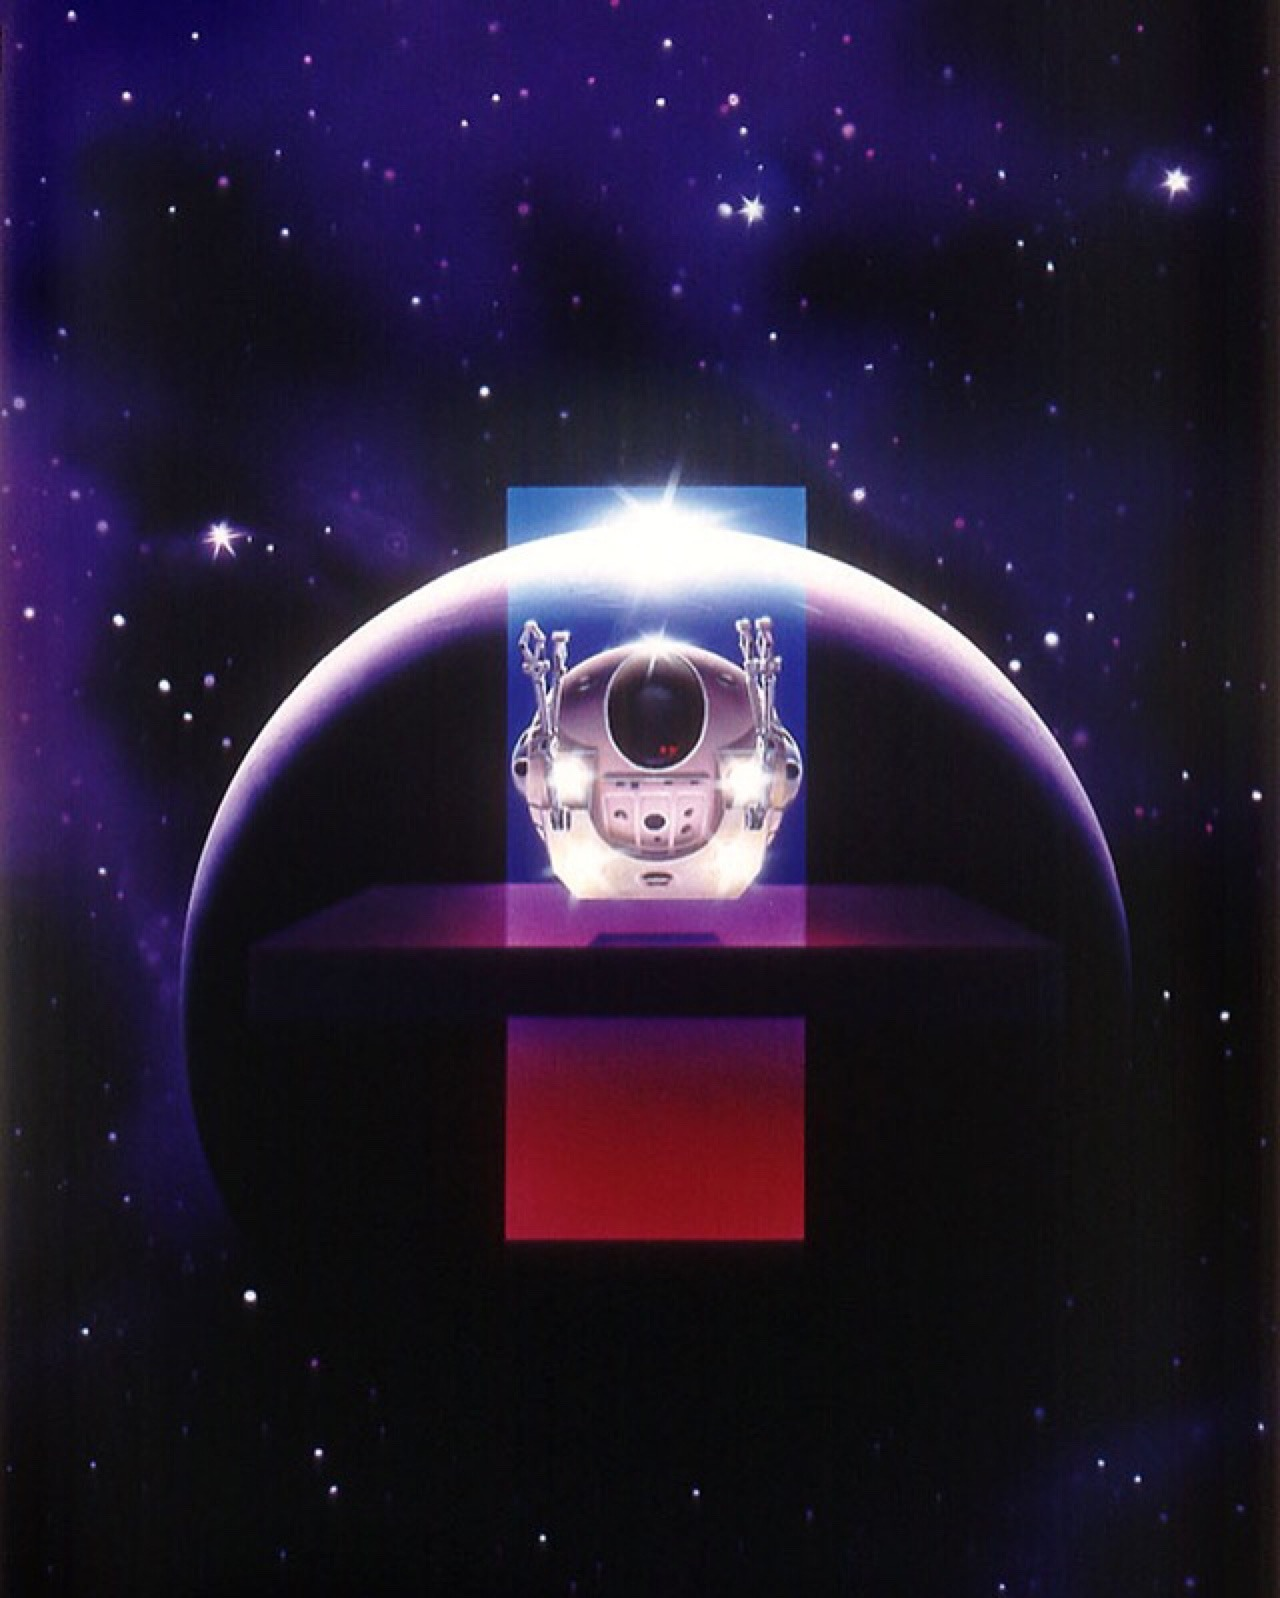 martinlkennedy: 2001 A Space Odyssey by Chris Moore. This painting was for a 2009 reprinting of Arthur C Clarke's classic novel by Orbit Books.